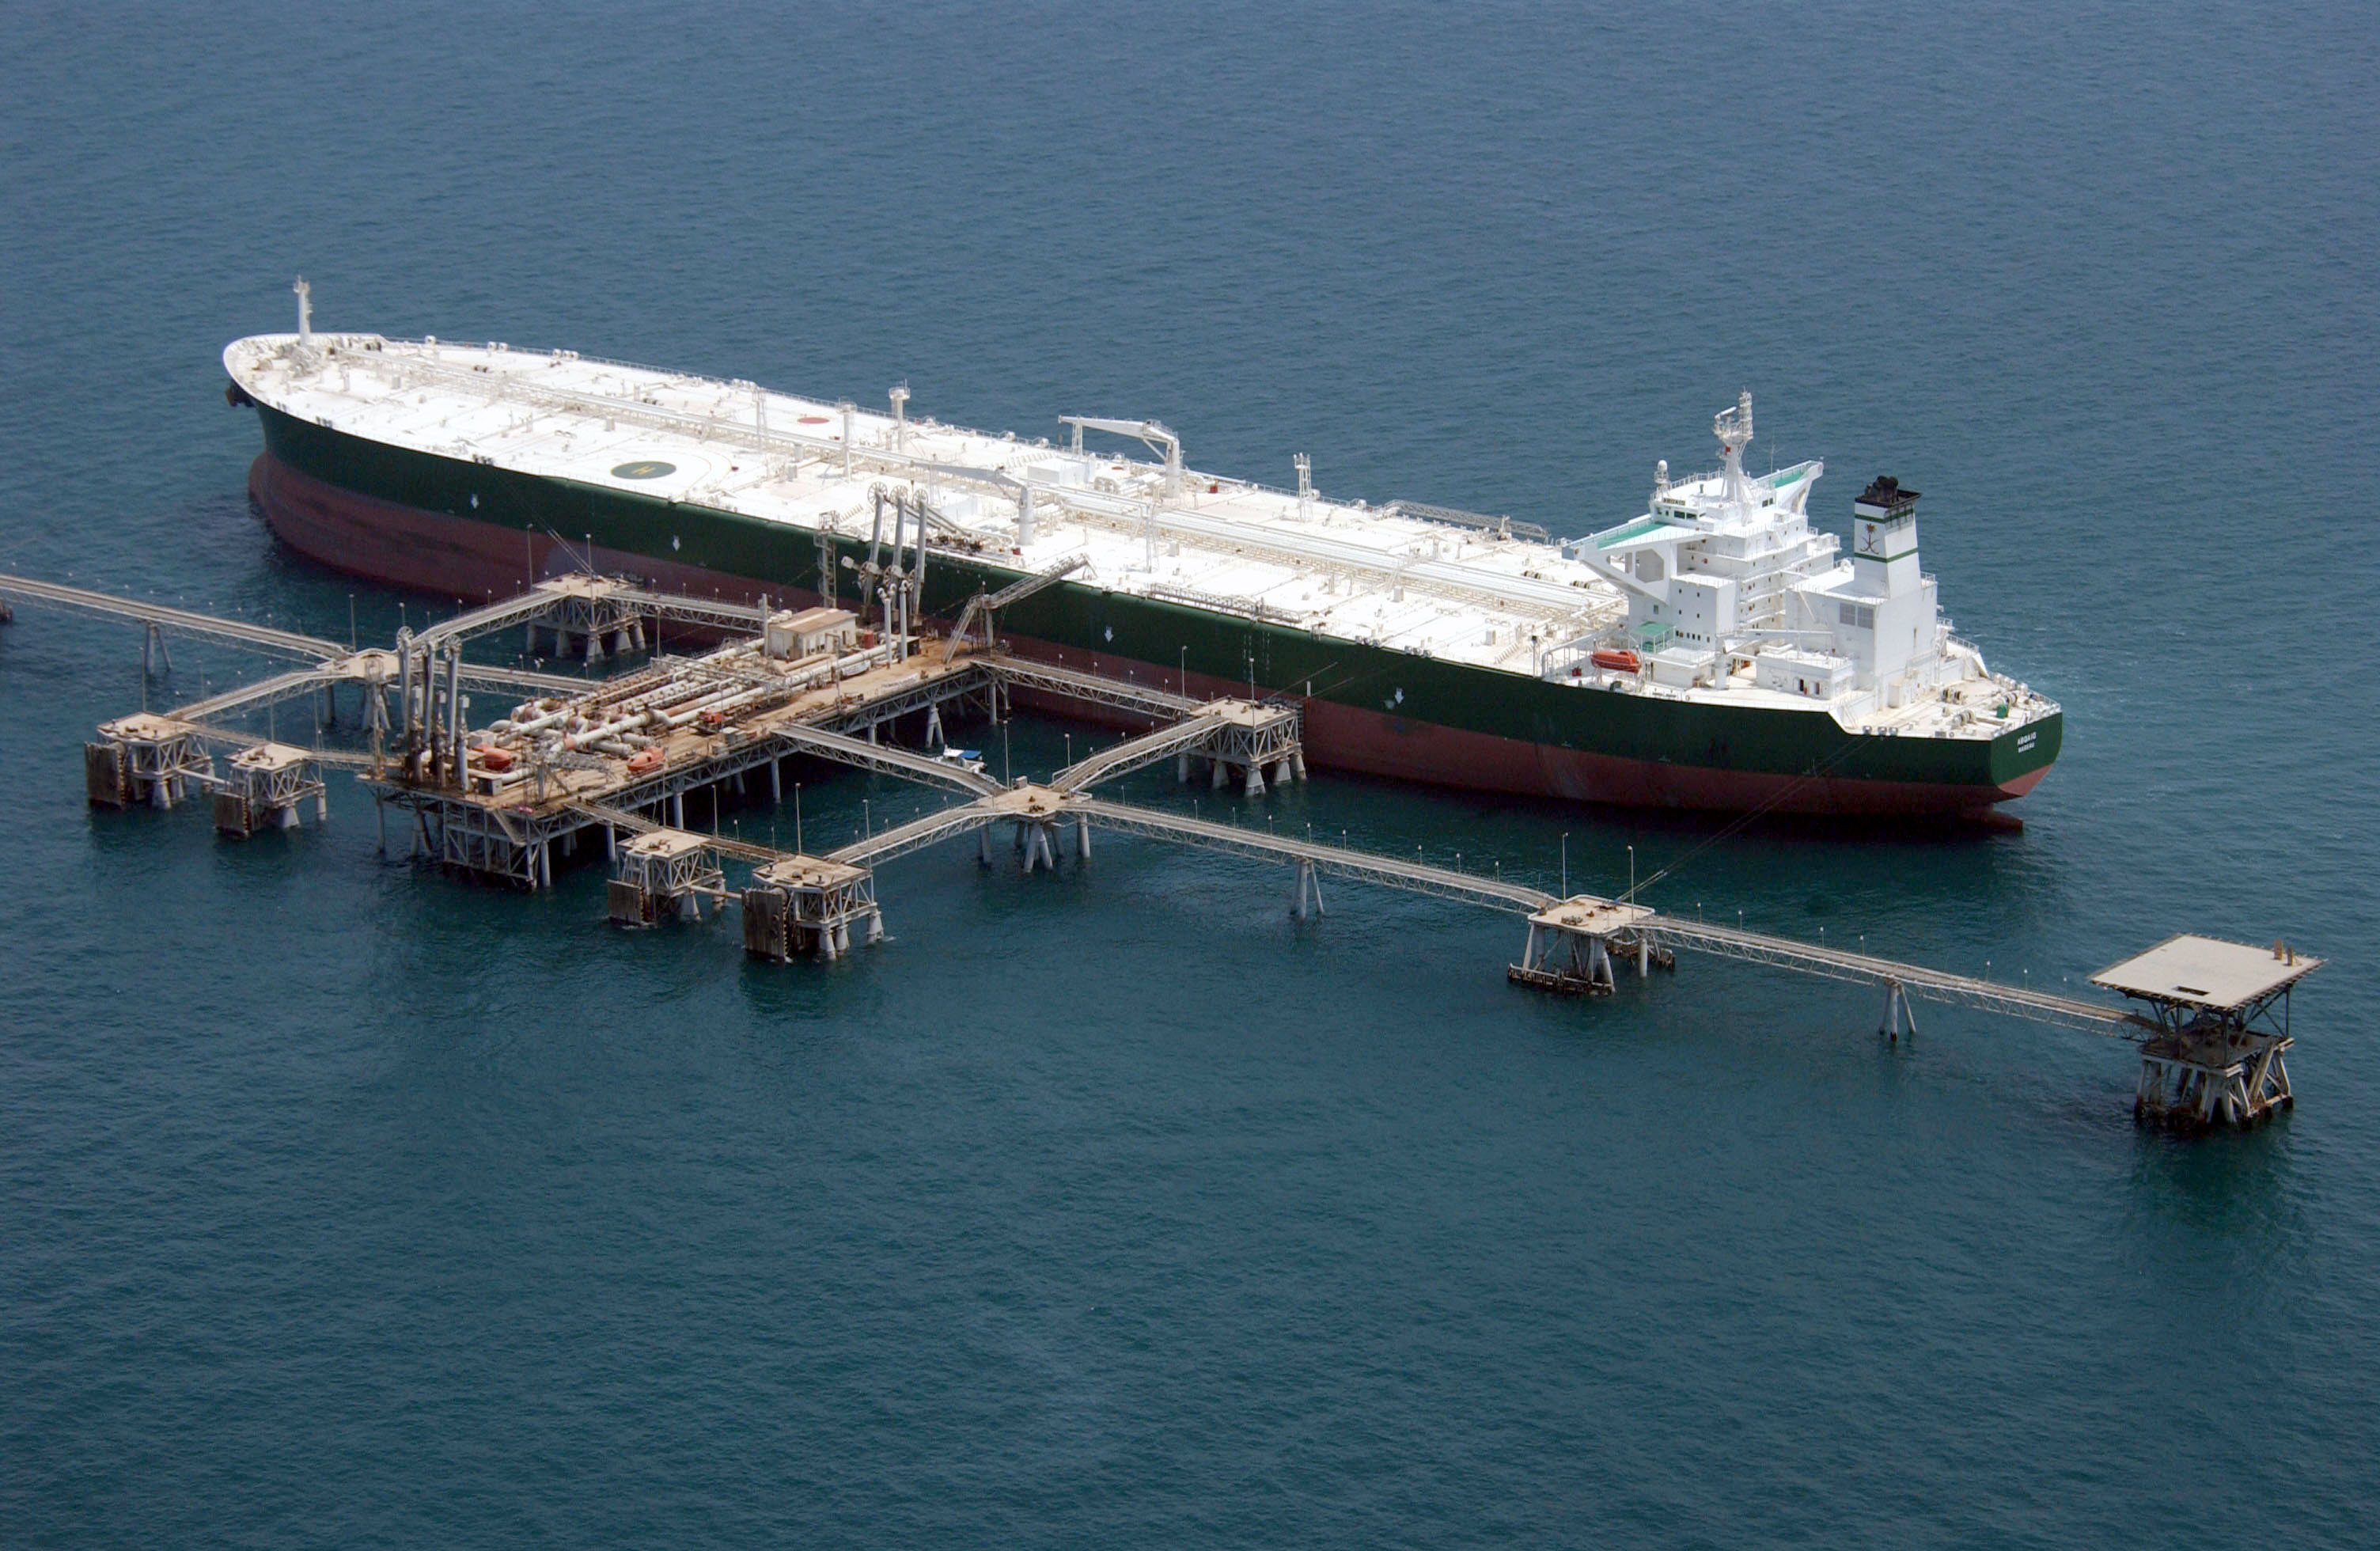 Commercial Oil Tanker Abqaiq Readies Itself To Receive Oil At Mina.